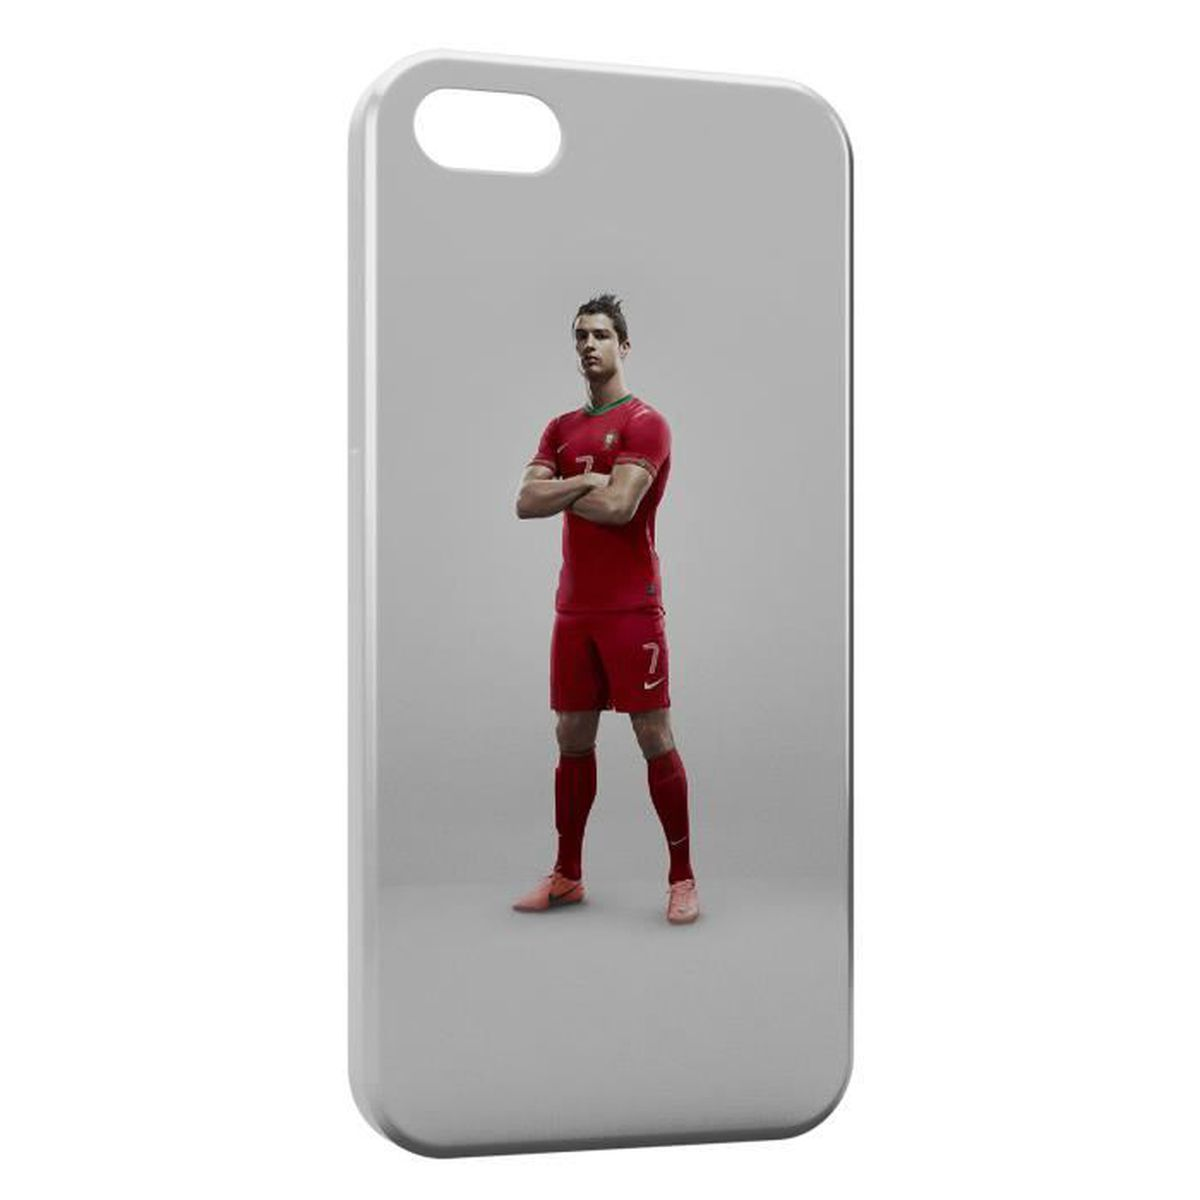 coque cr7 iphone 5